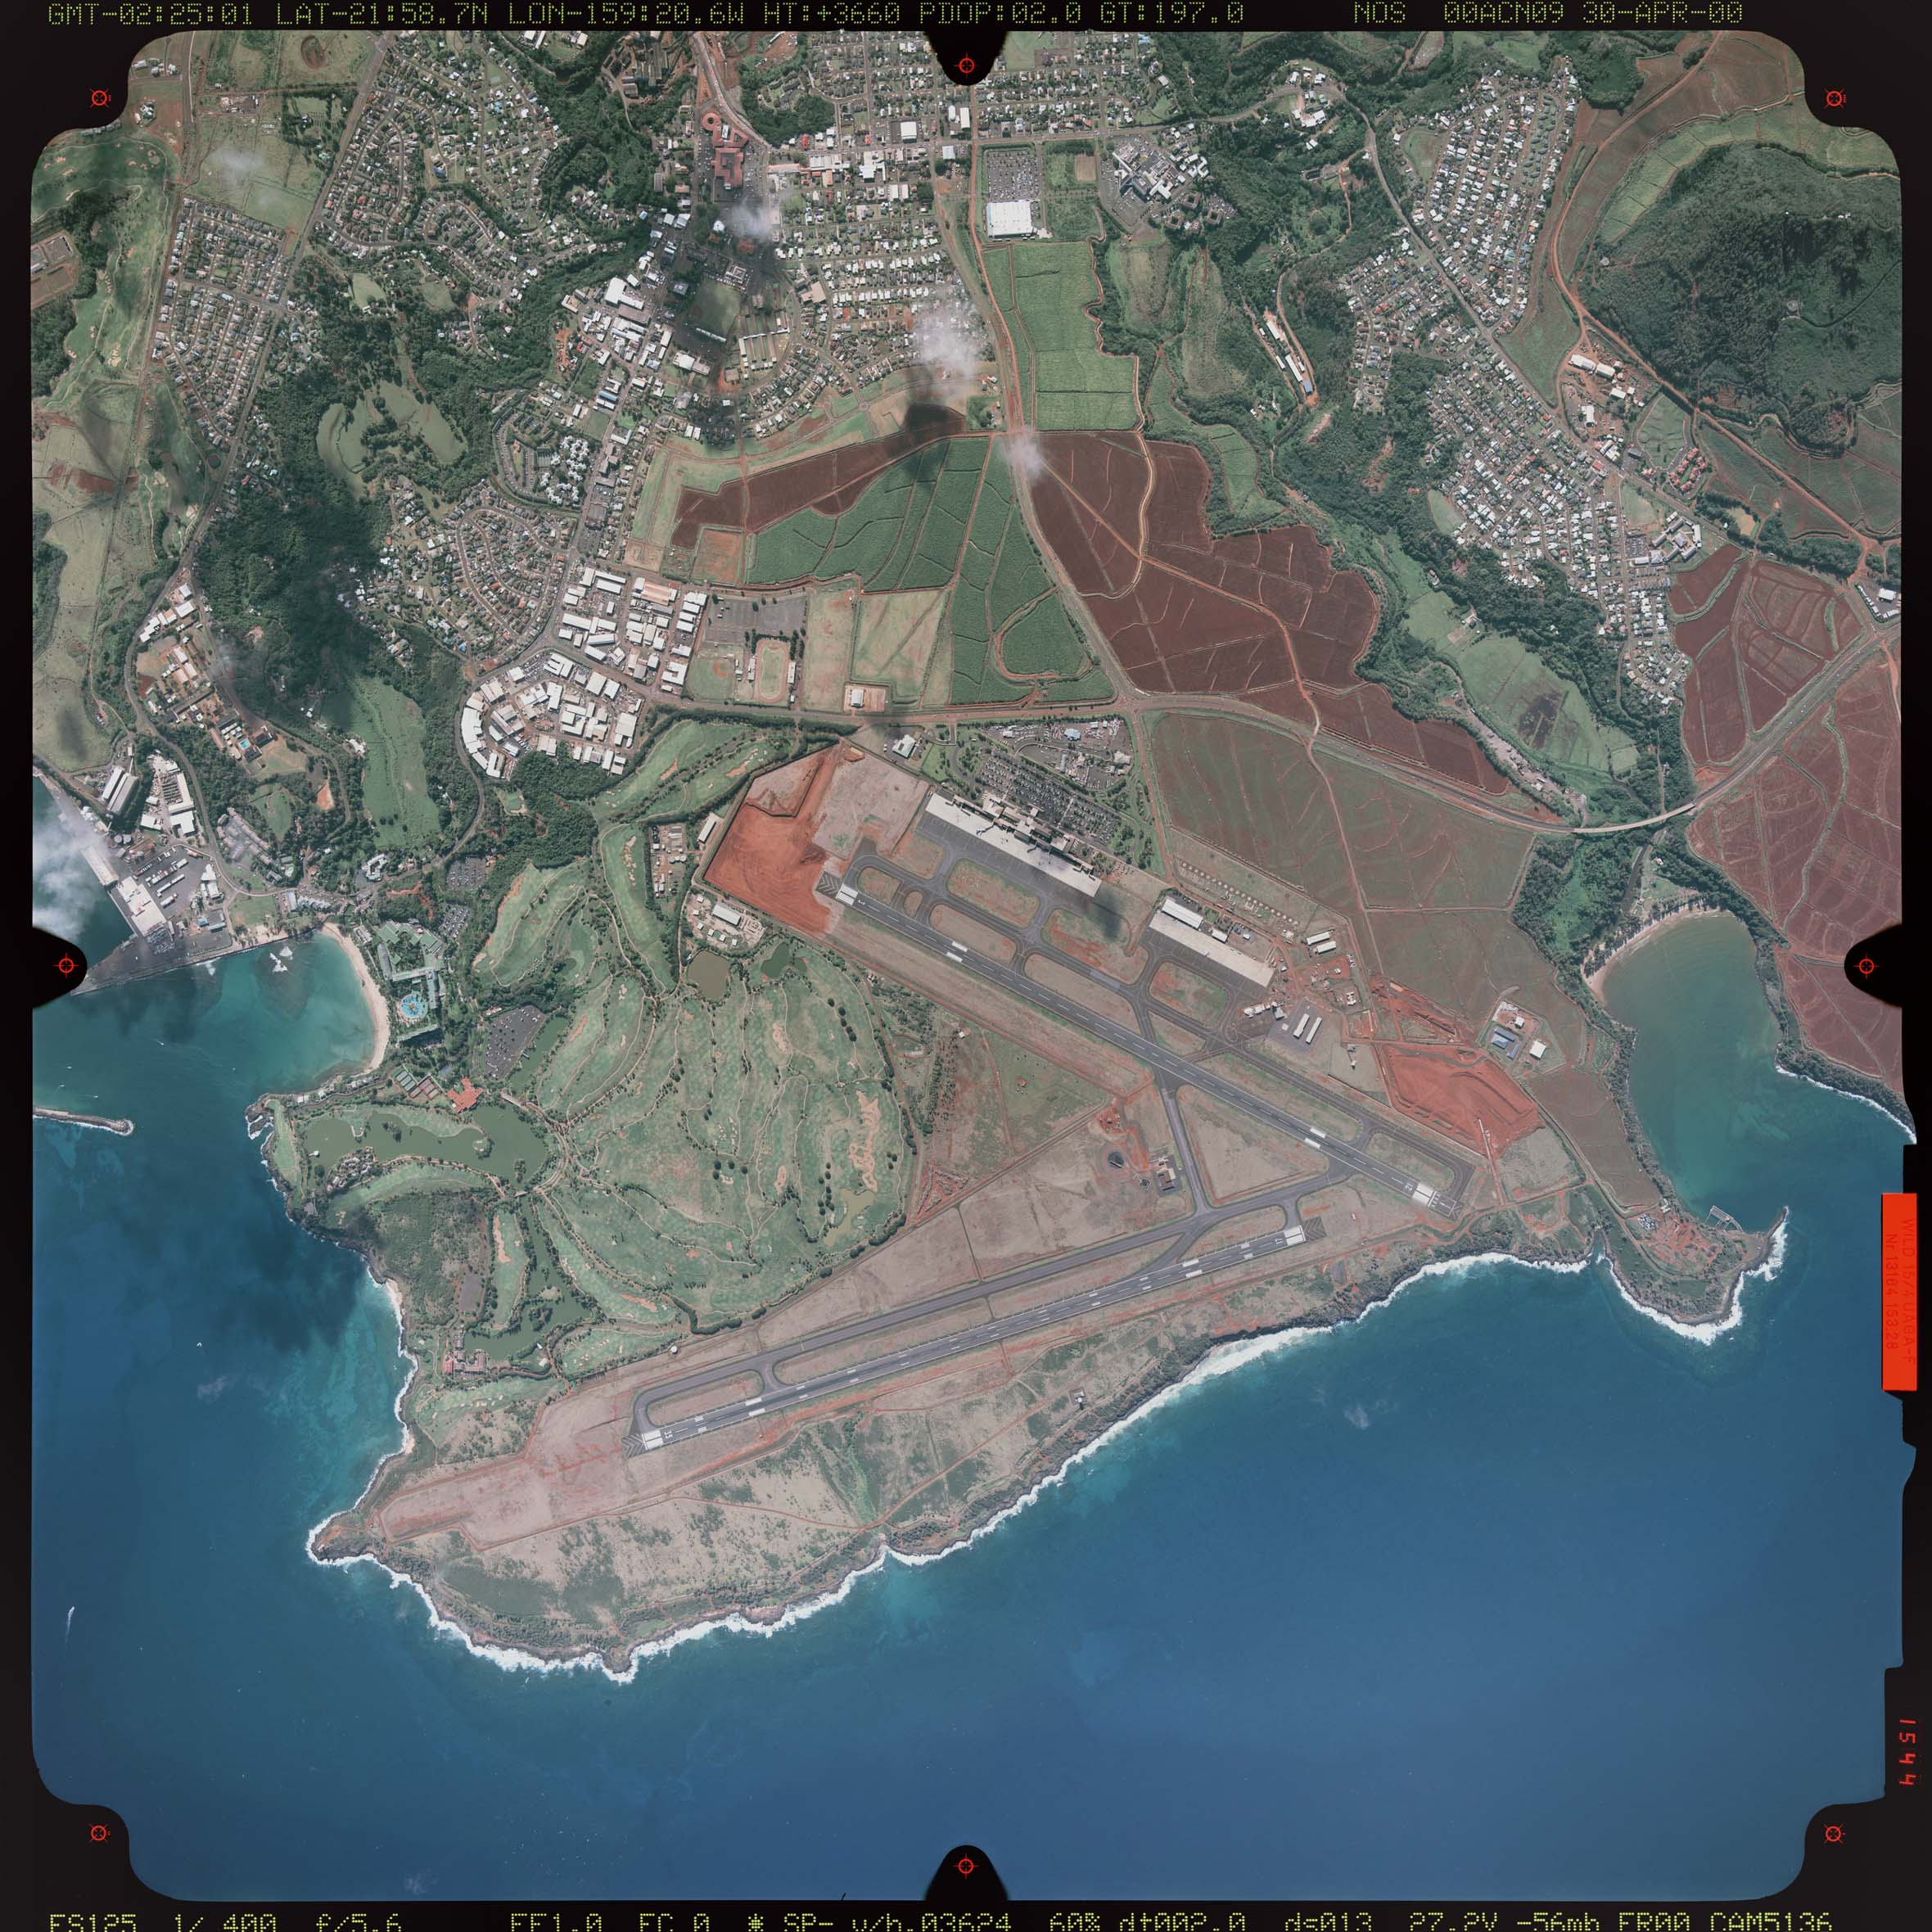 Aerial photograph of Lihue Airport taken in 2000